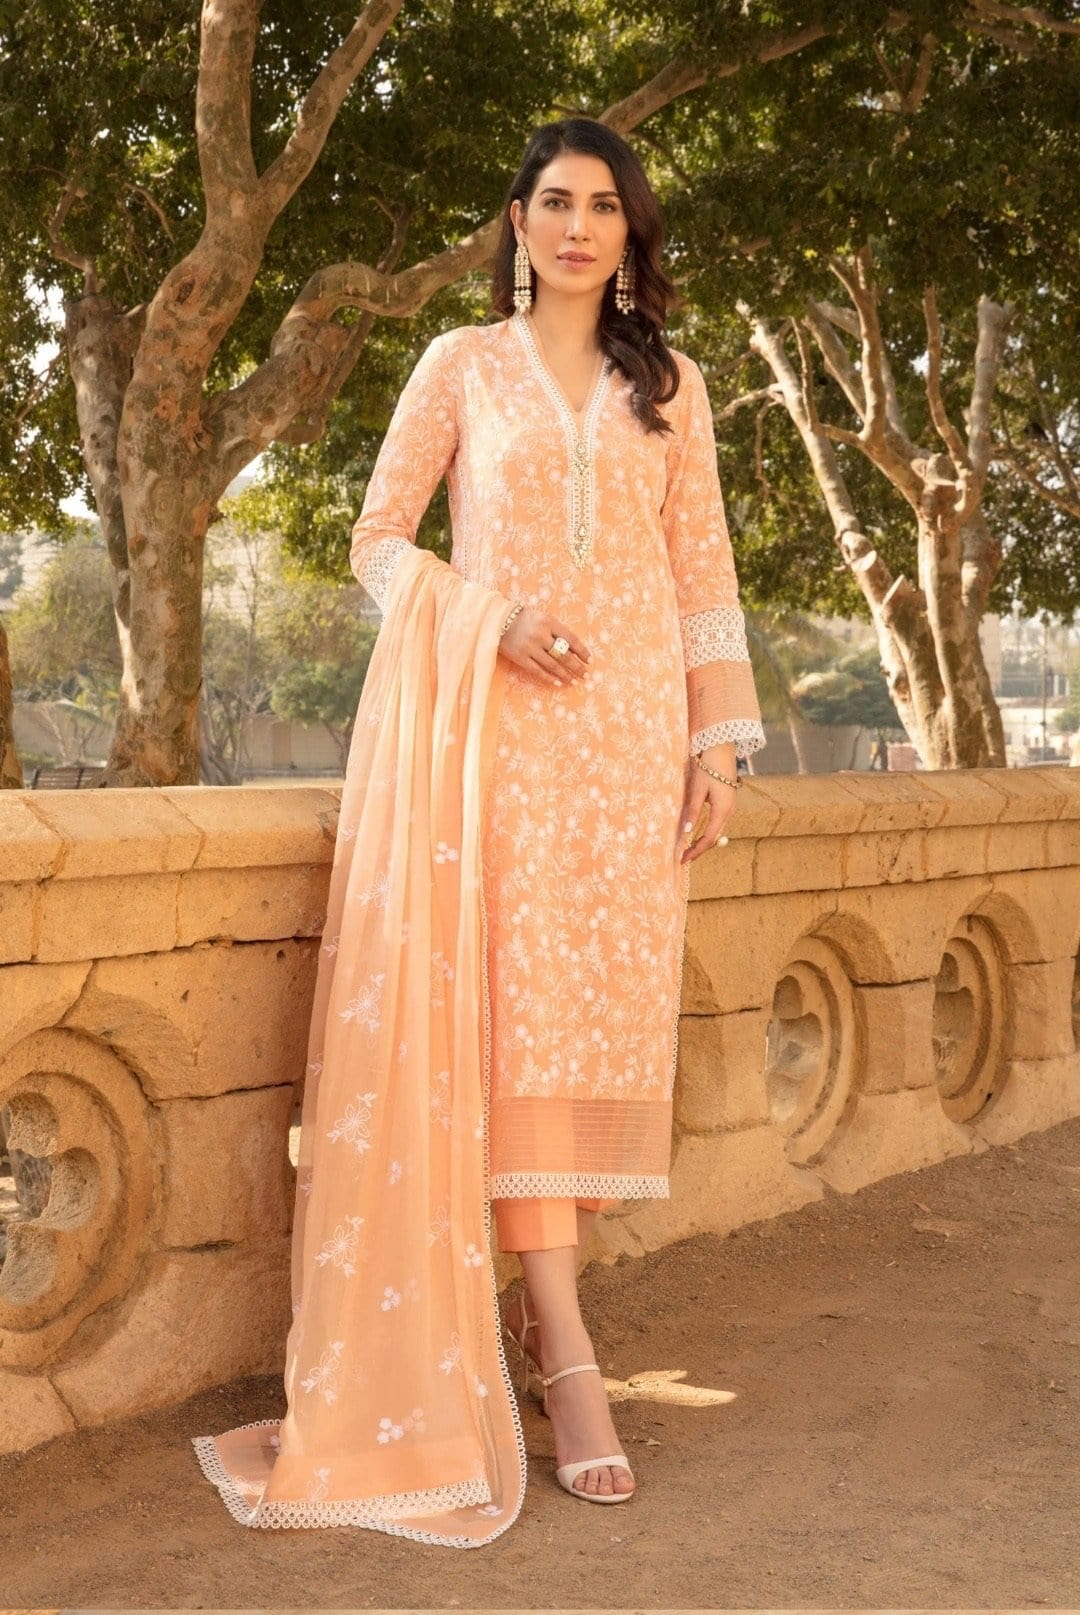 Bareeze 310 -Embroidered 3pc lawn dress with embroidered chiffon dupatta.